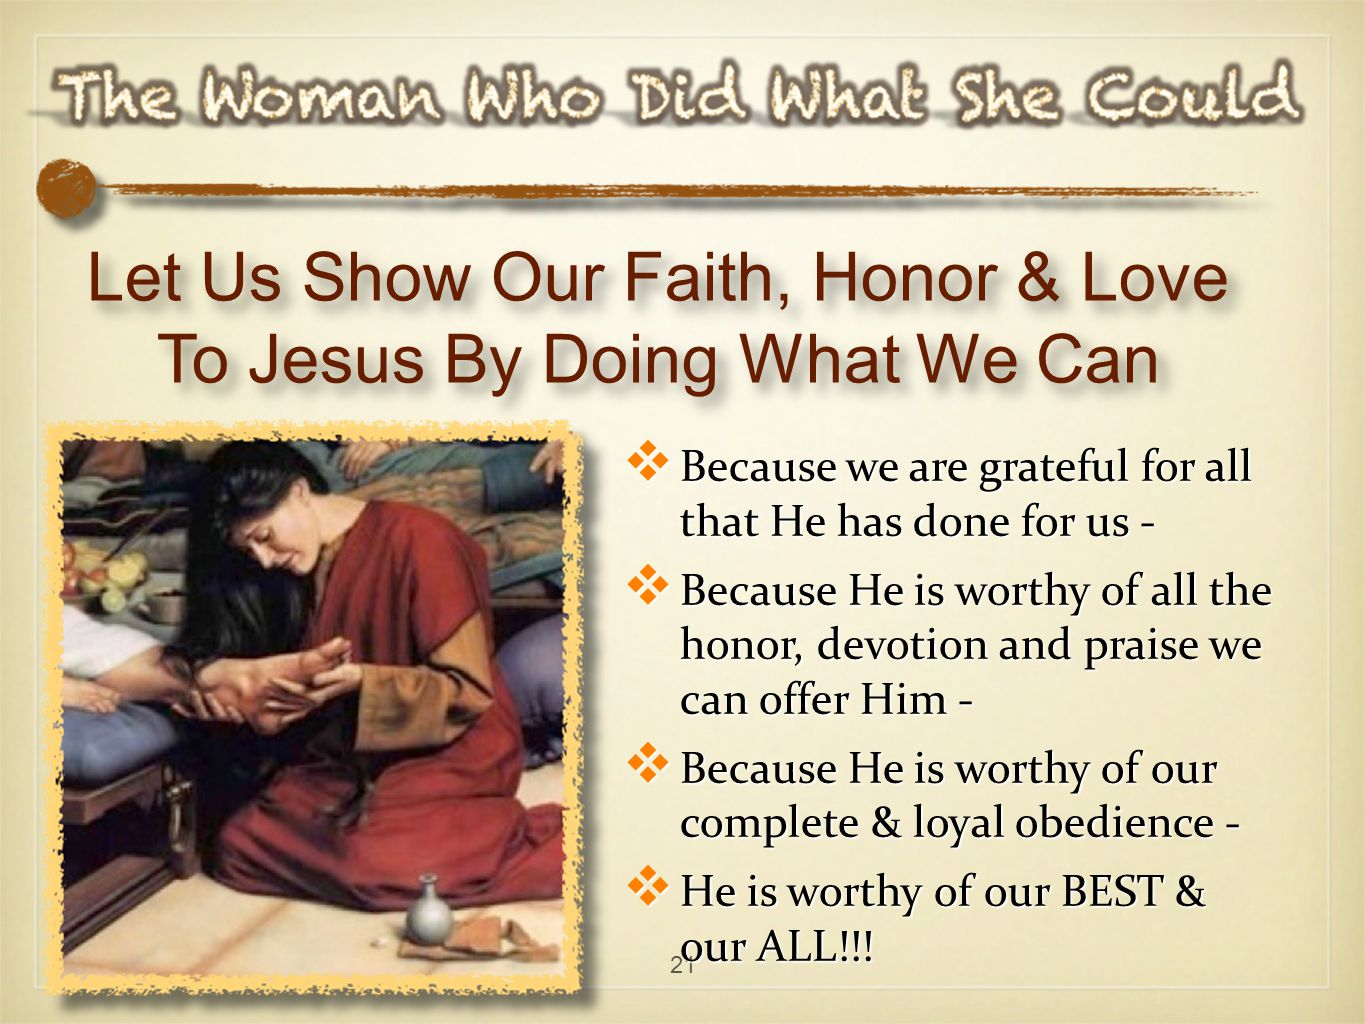 21 Let Us Show Our Faith, Honor & Love To Jesus By Doing What We Can  Because we are grateful for all that He has done for us -  Because He is worthy of all the honor, devotion and praise we can offer Him -  Because He is worthy of our complete & loyal obedience -  He is worthy of our BEST & our ALL!!!